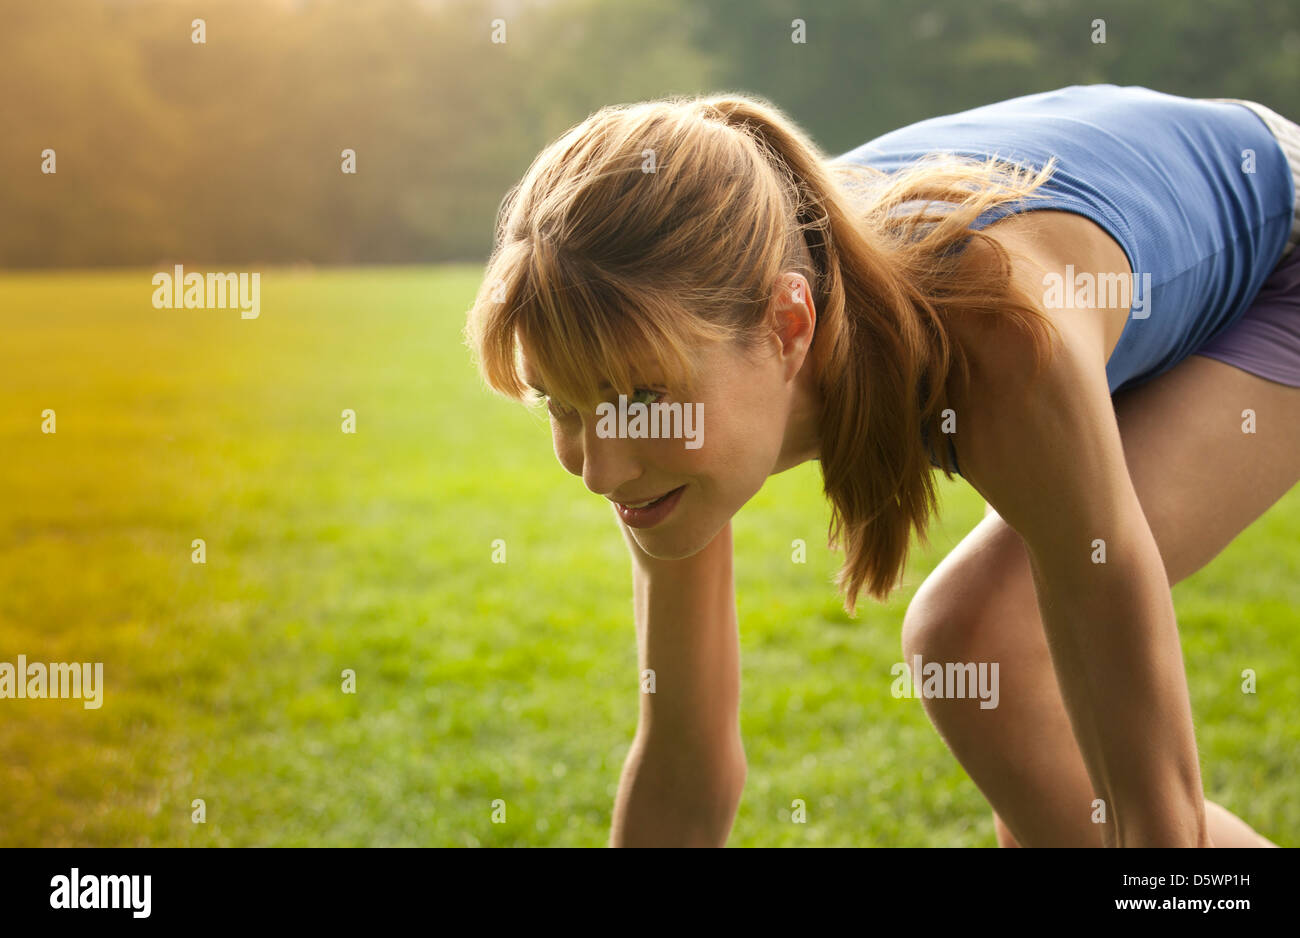 Runner in stance at park - Stock Image